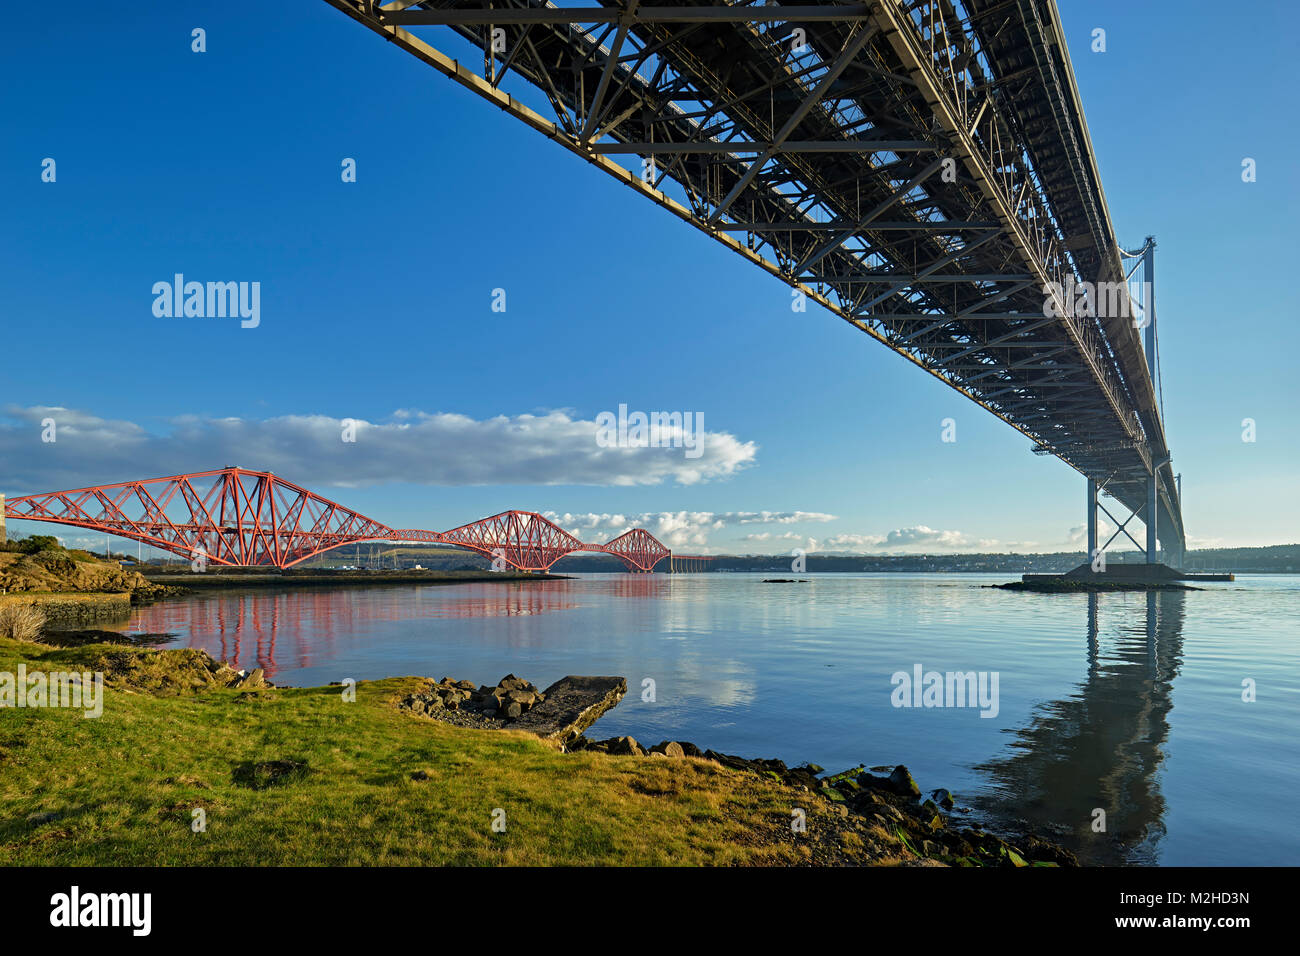 Forth Road Bridge and Forth Rail Bridge from North Queensferry, Fife, Scotland. - Stock Image